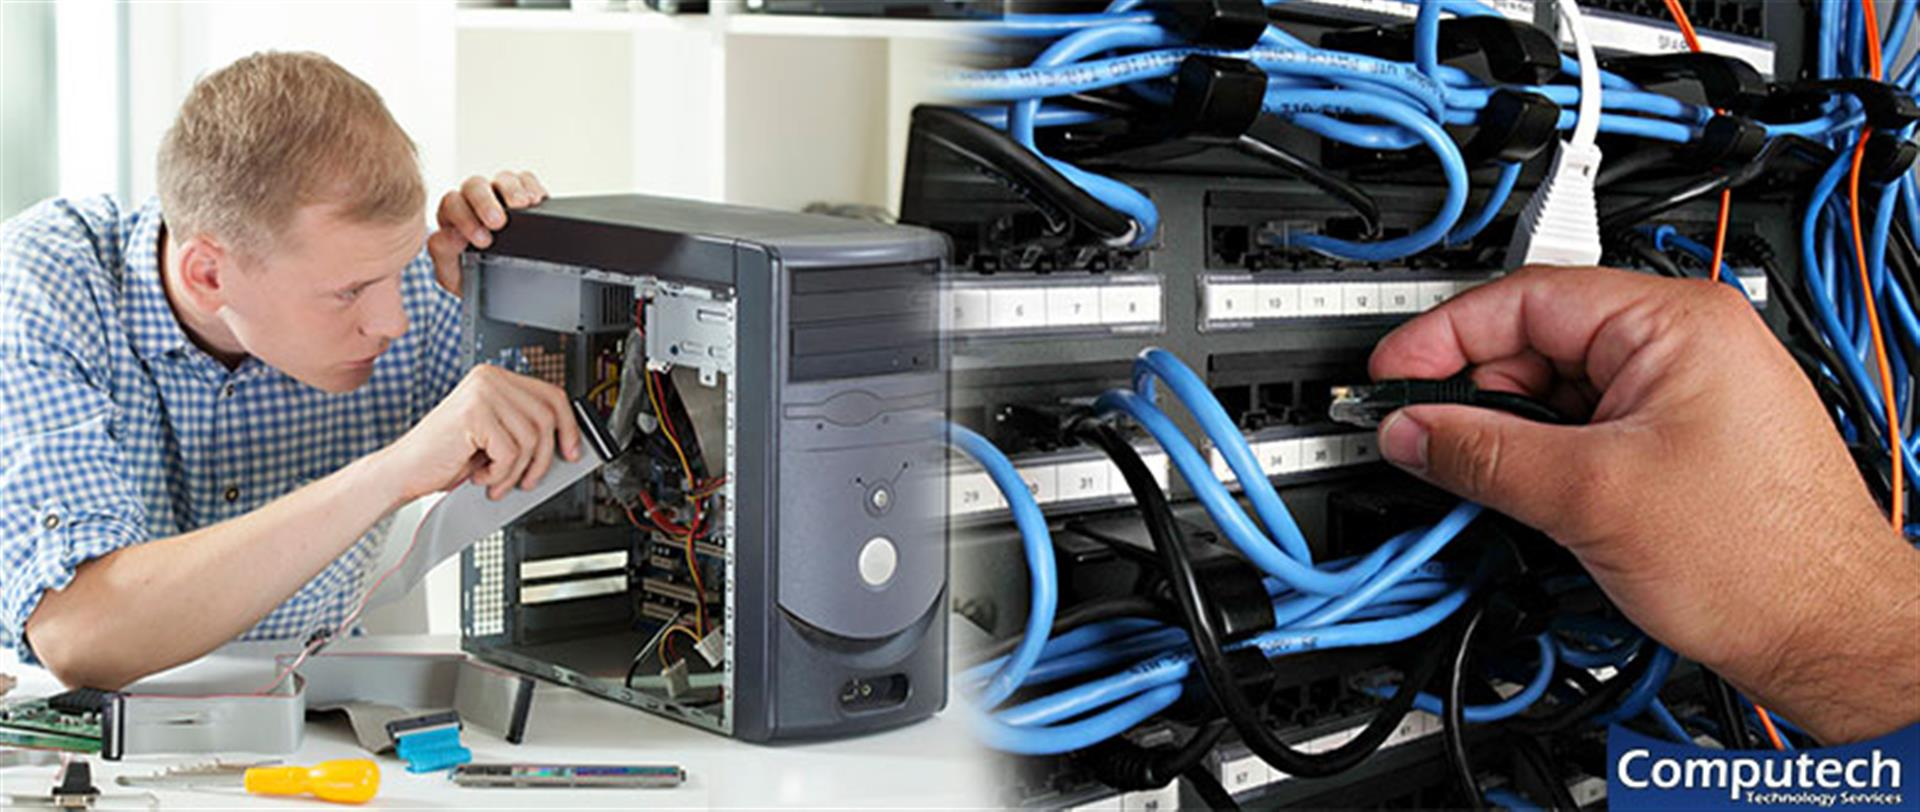 Millington Tennessee Onsite Computer & Printer Repairs, Networking, Voice & Data Cabling Services